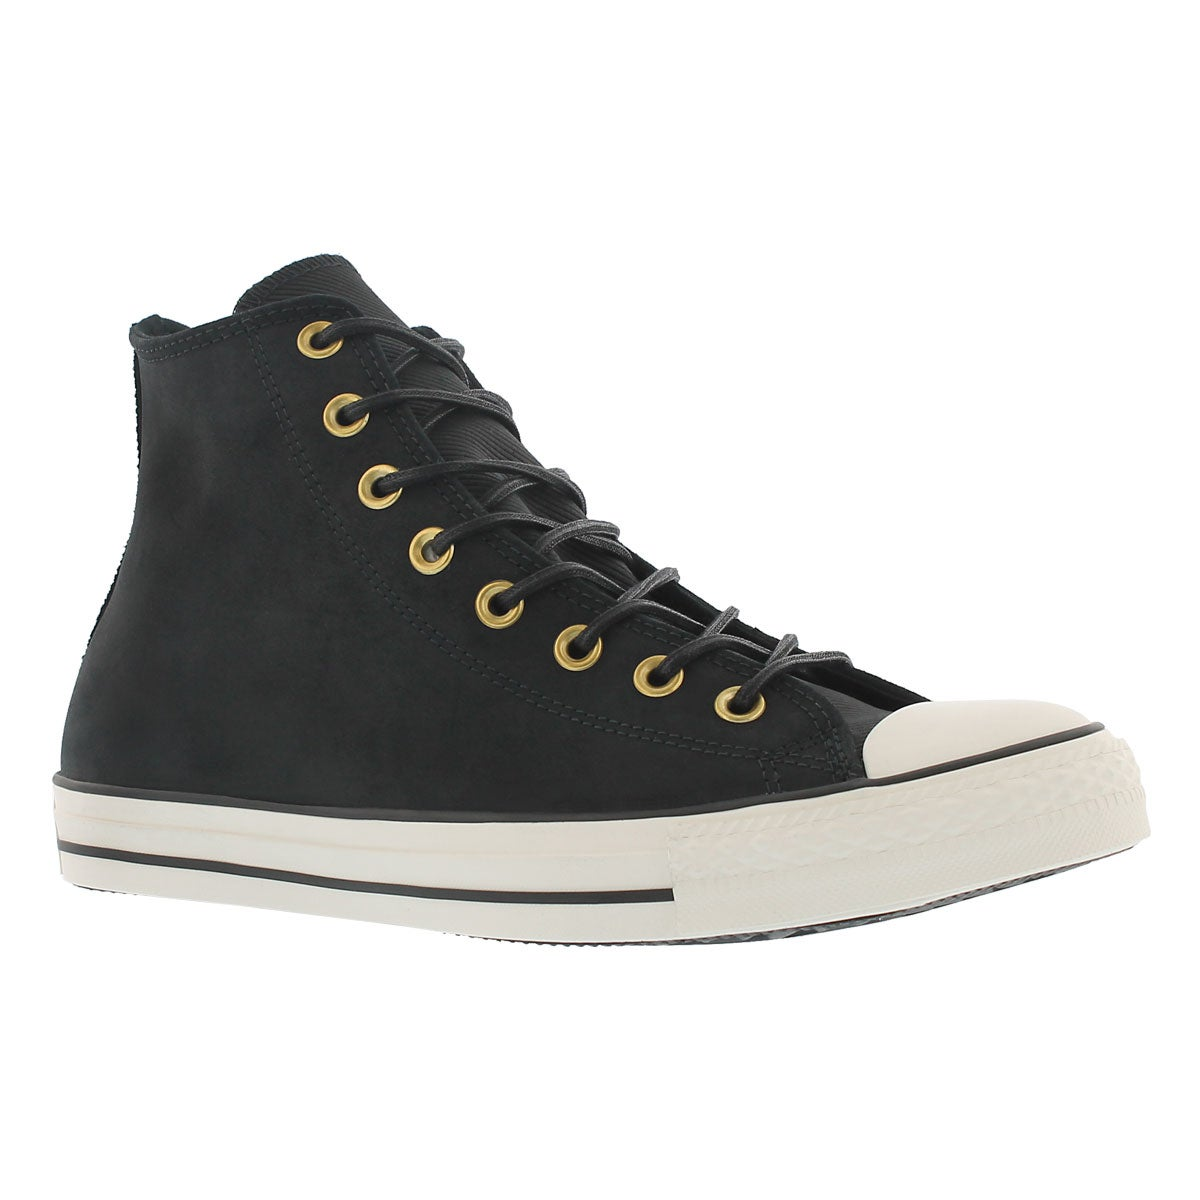 Mns CT A/S Leather Corduroy  blk hi top